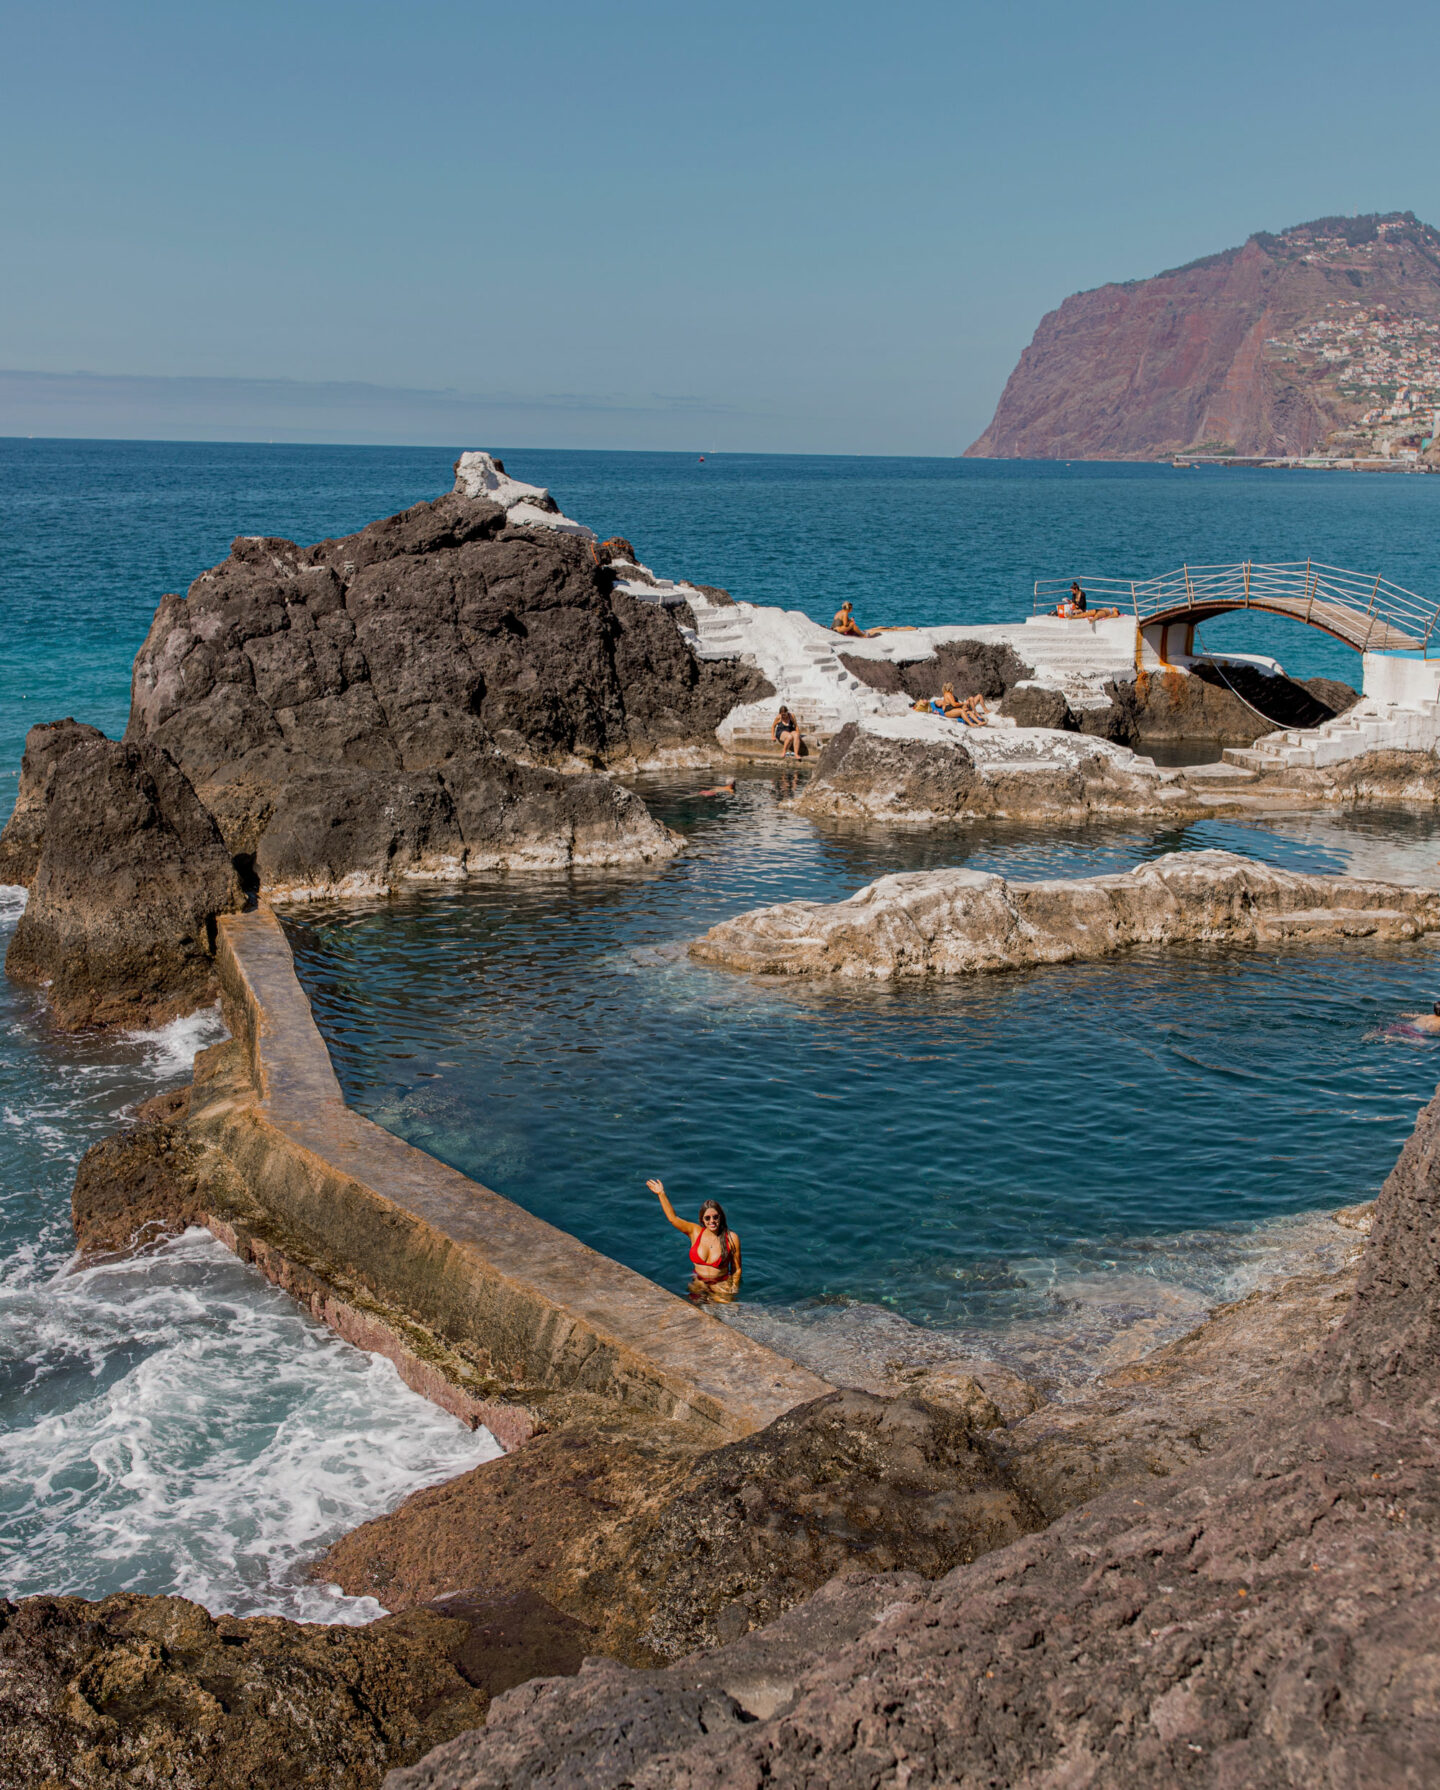 Doca do Cavacas - Top-things-to-do-in-madeira-Bucket-list--Instagram-Story-Template--kelseyinlondon-Kelsey-Heinrichs--What-to-do-in-madeira--Where-to-go-in-madeira-top-places-in-madeira-Doca do Cavacas